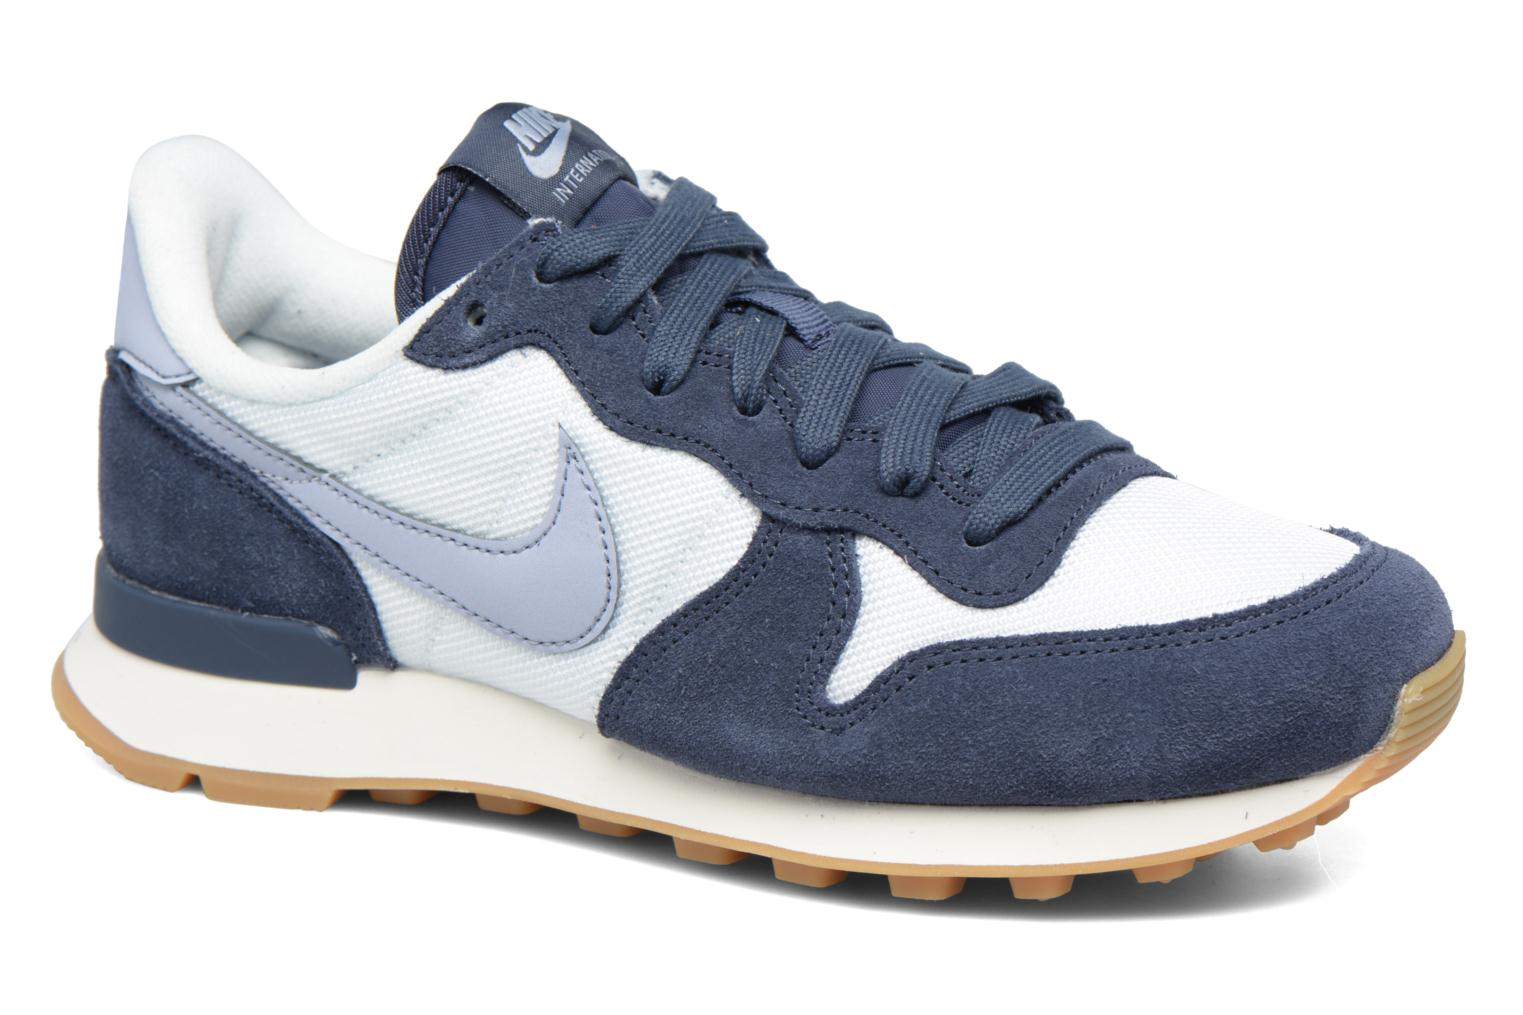 e0a7cf493bb nike-internationalist-dames-blauw-828407-102-blauwe-sneakers-. 30 %. nike  internationalist blauw